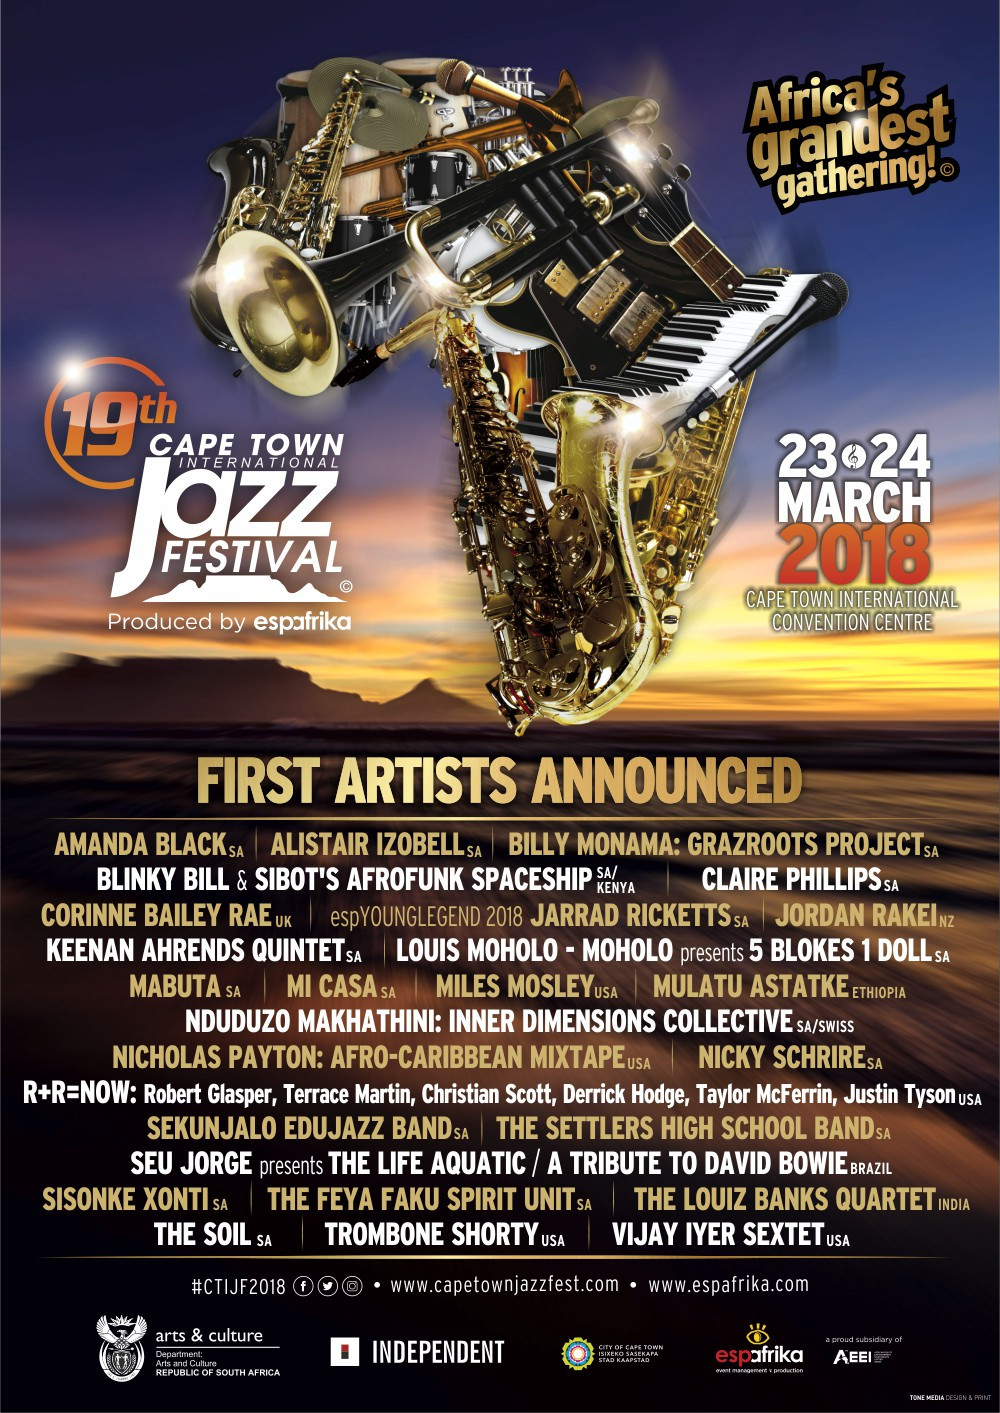 CTIJF2018 FIRST ARTISTS